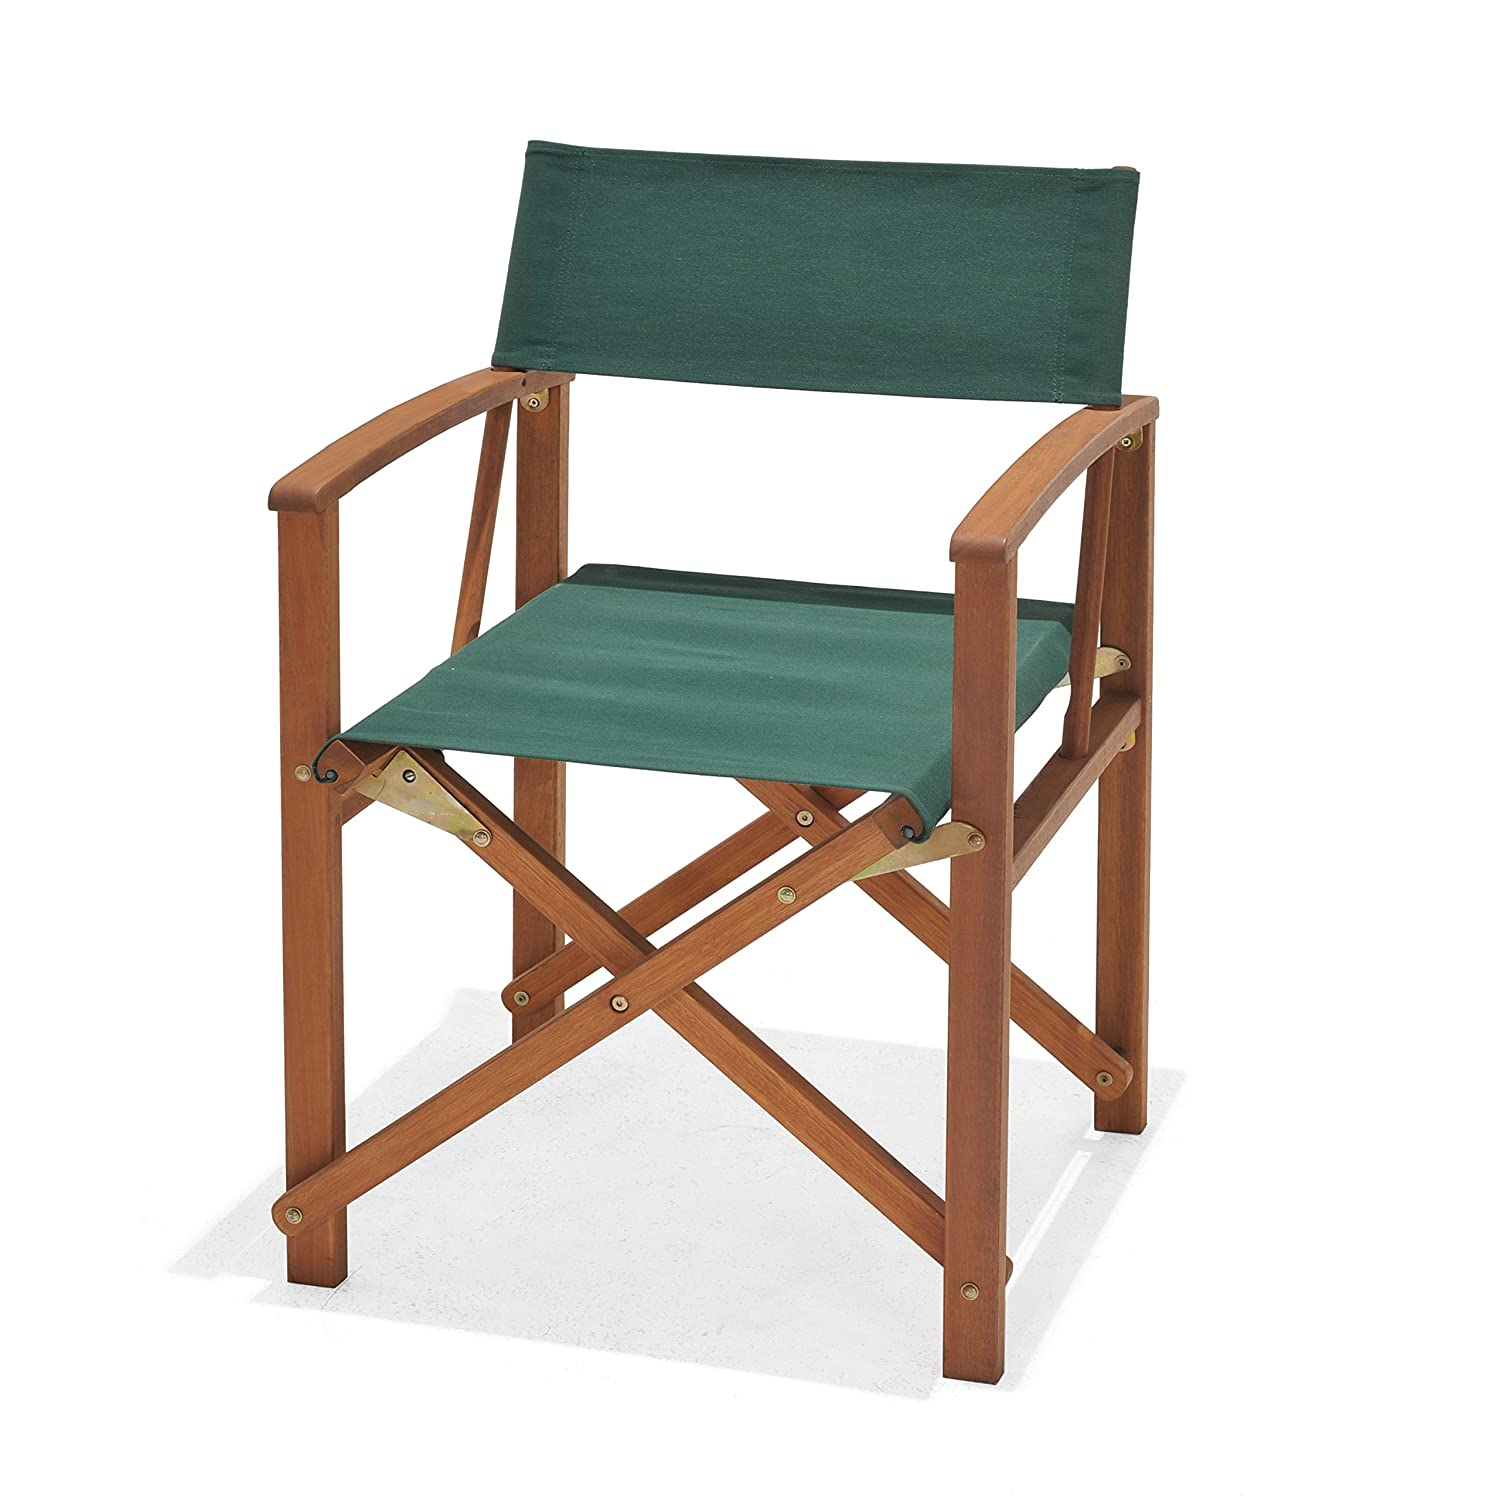 Chichester Weather Tex Fabric And Fsc Eucalyptus Wood Outdoor Directors Chair